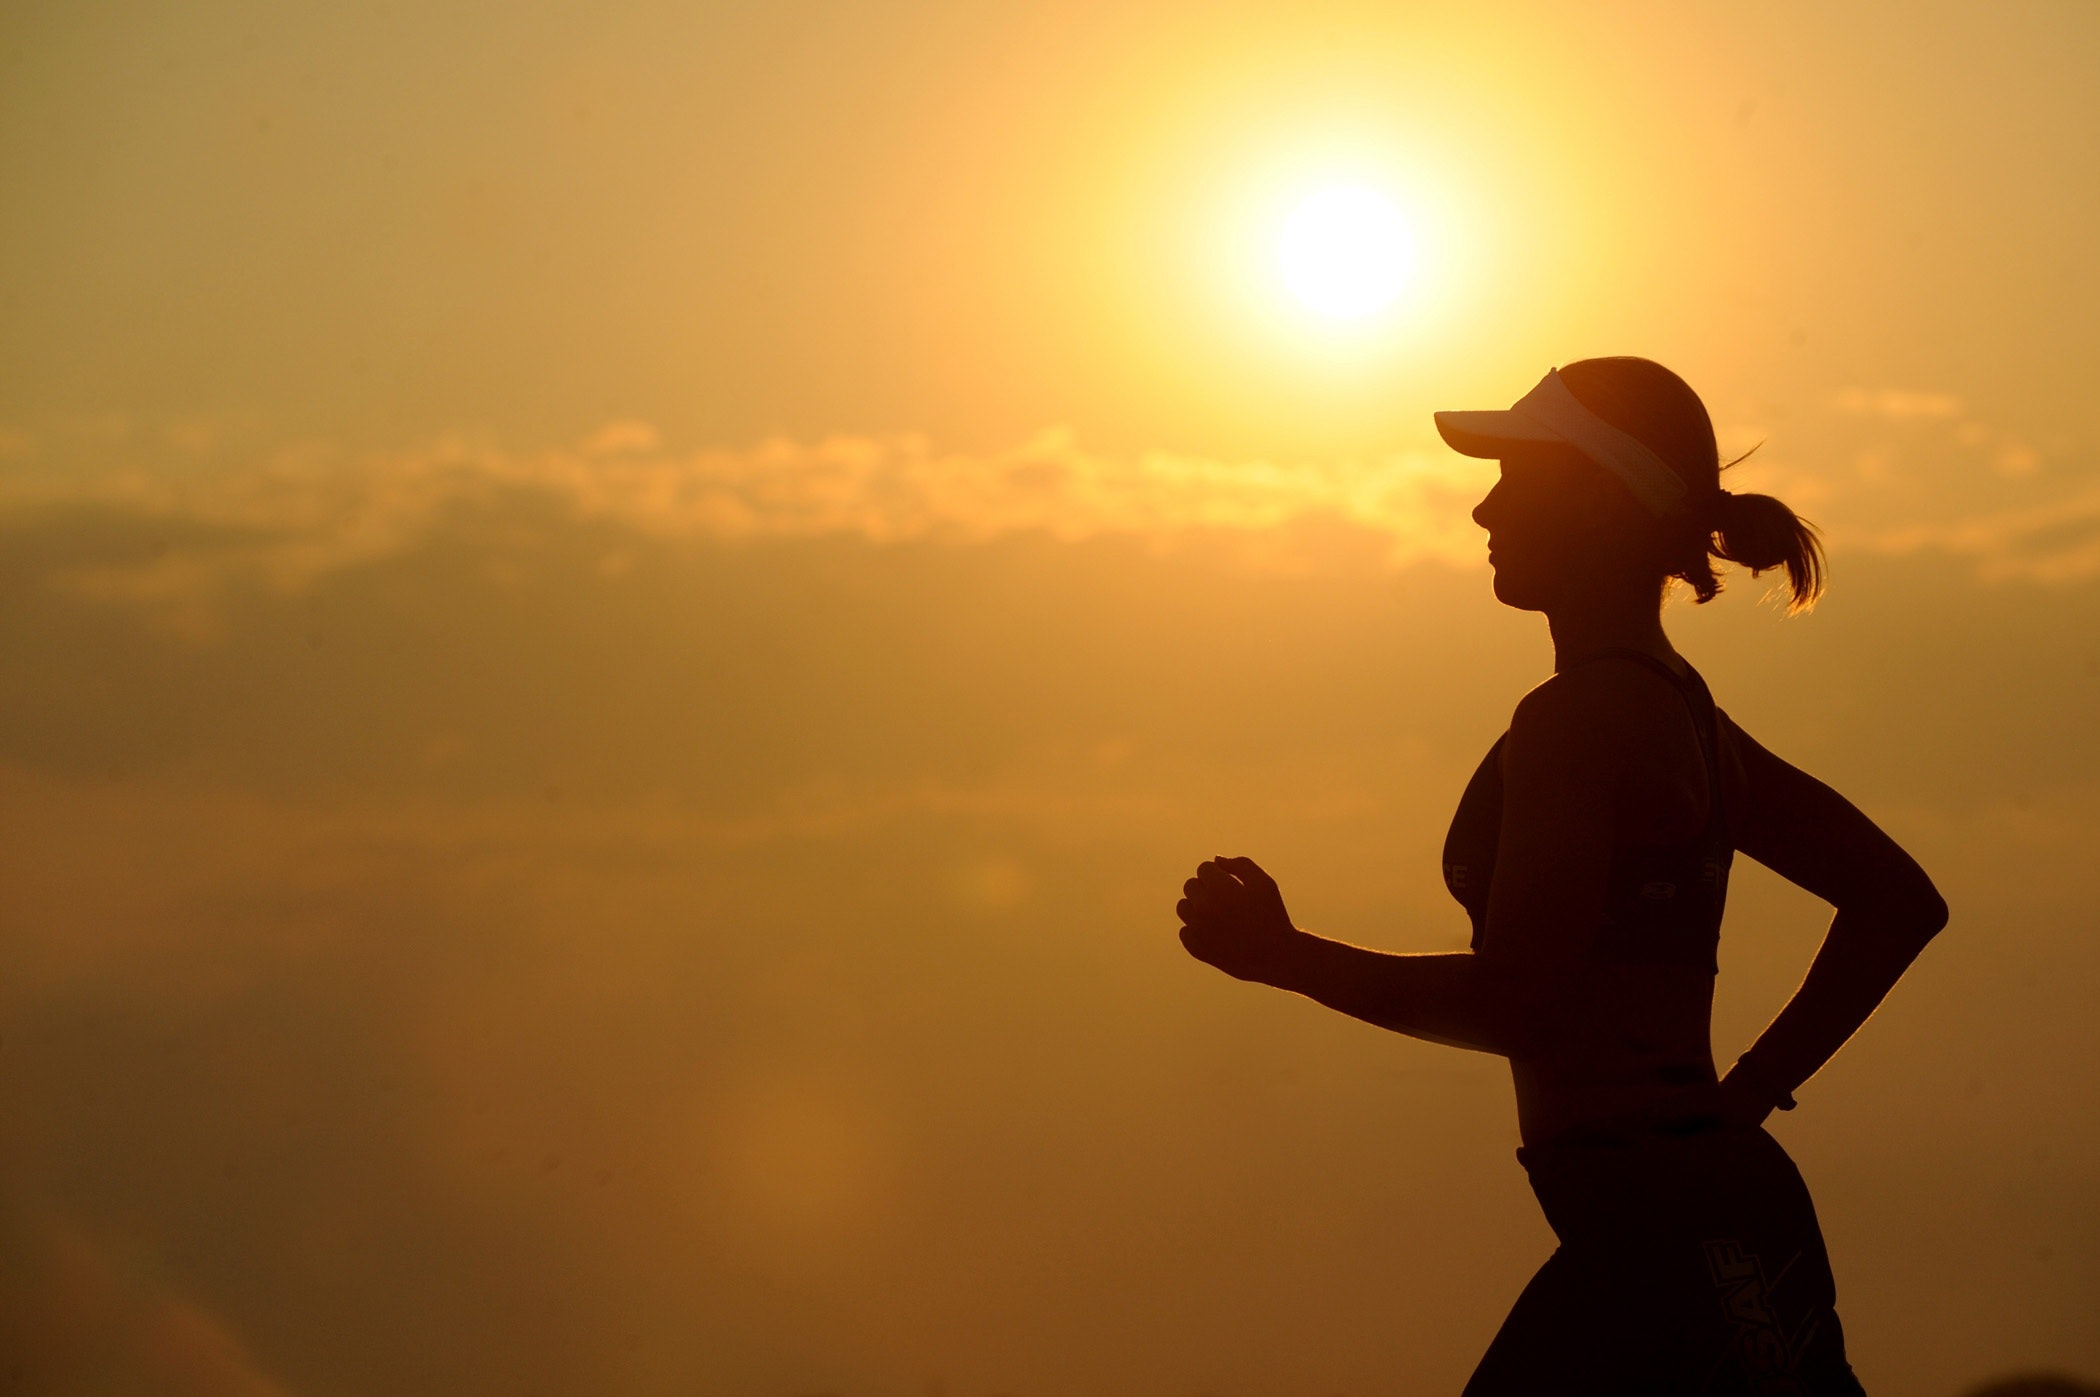 Cardio is one if the best exercise options for women in their 40s